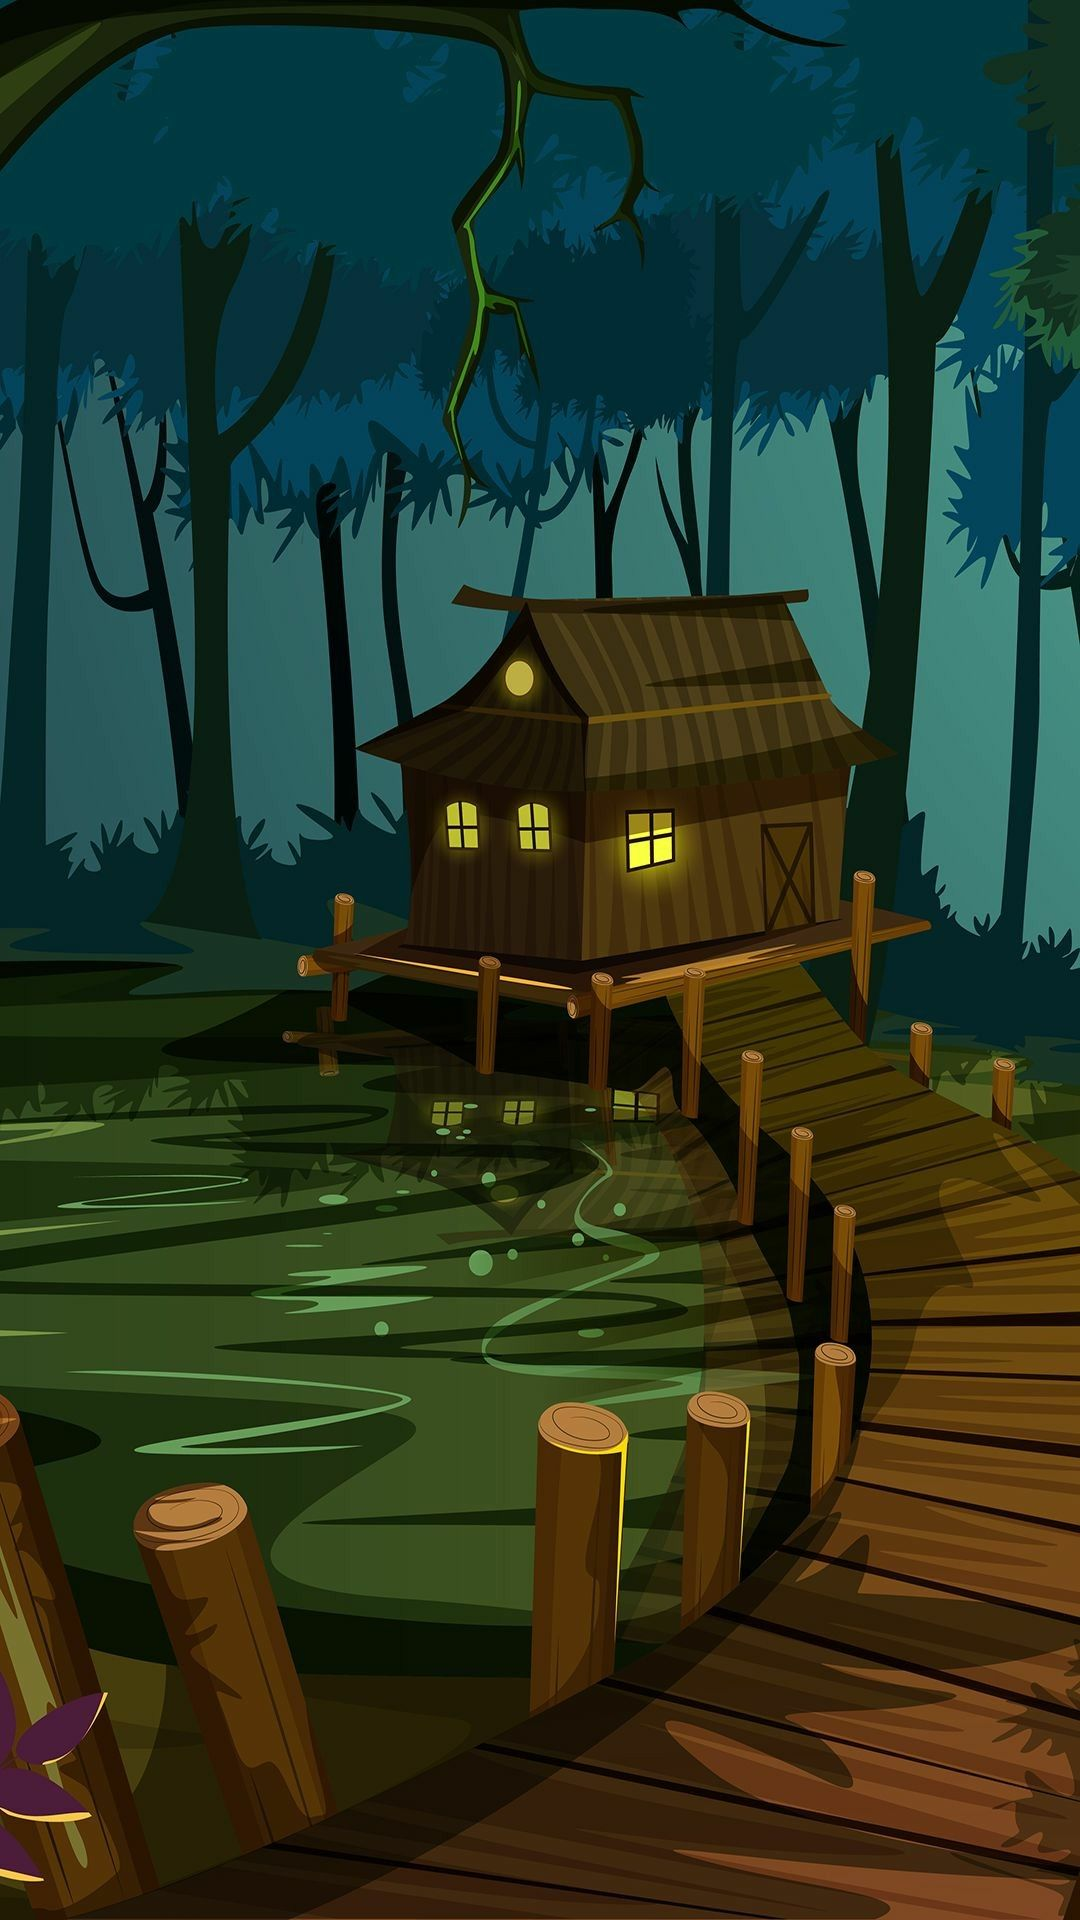 Shack in the swamp   Bayou house Cartoon forest and house with a 1080x1920